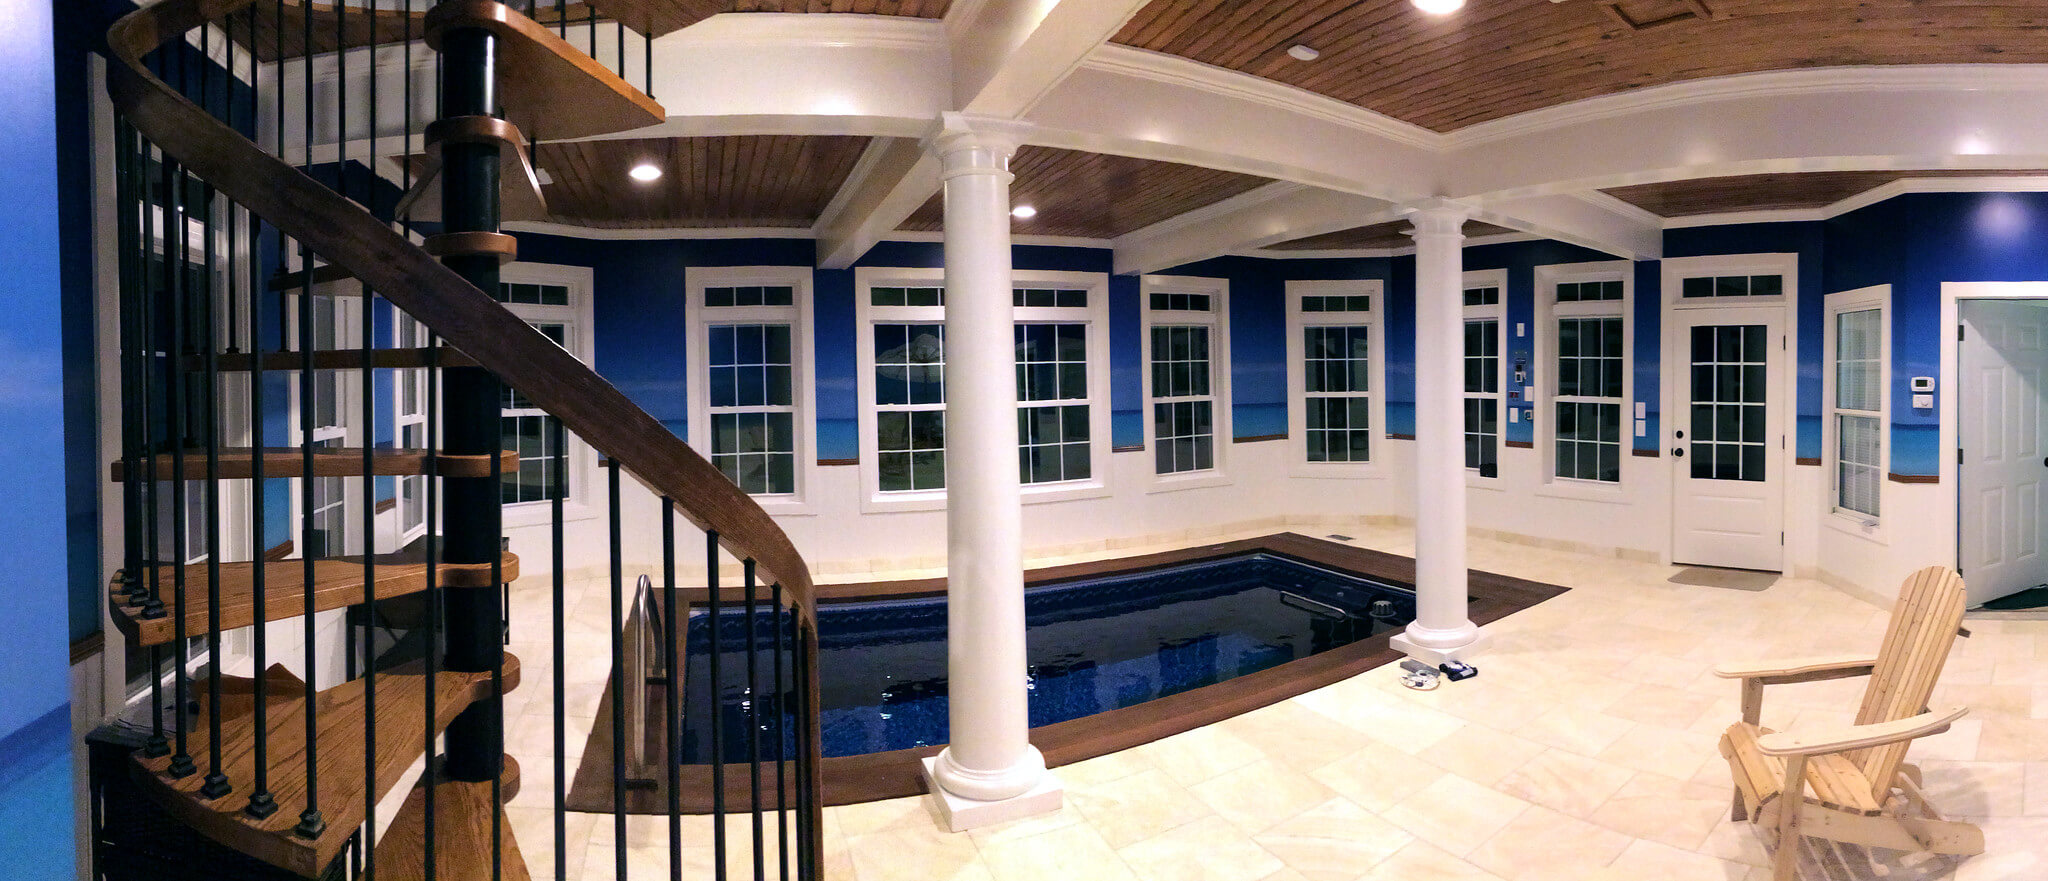 Original Endless Pool installed fully in-ground in a daylight basement